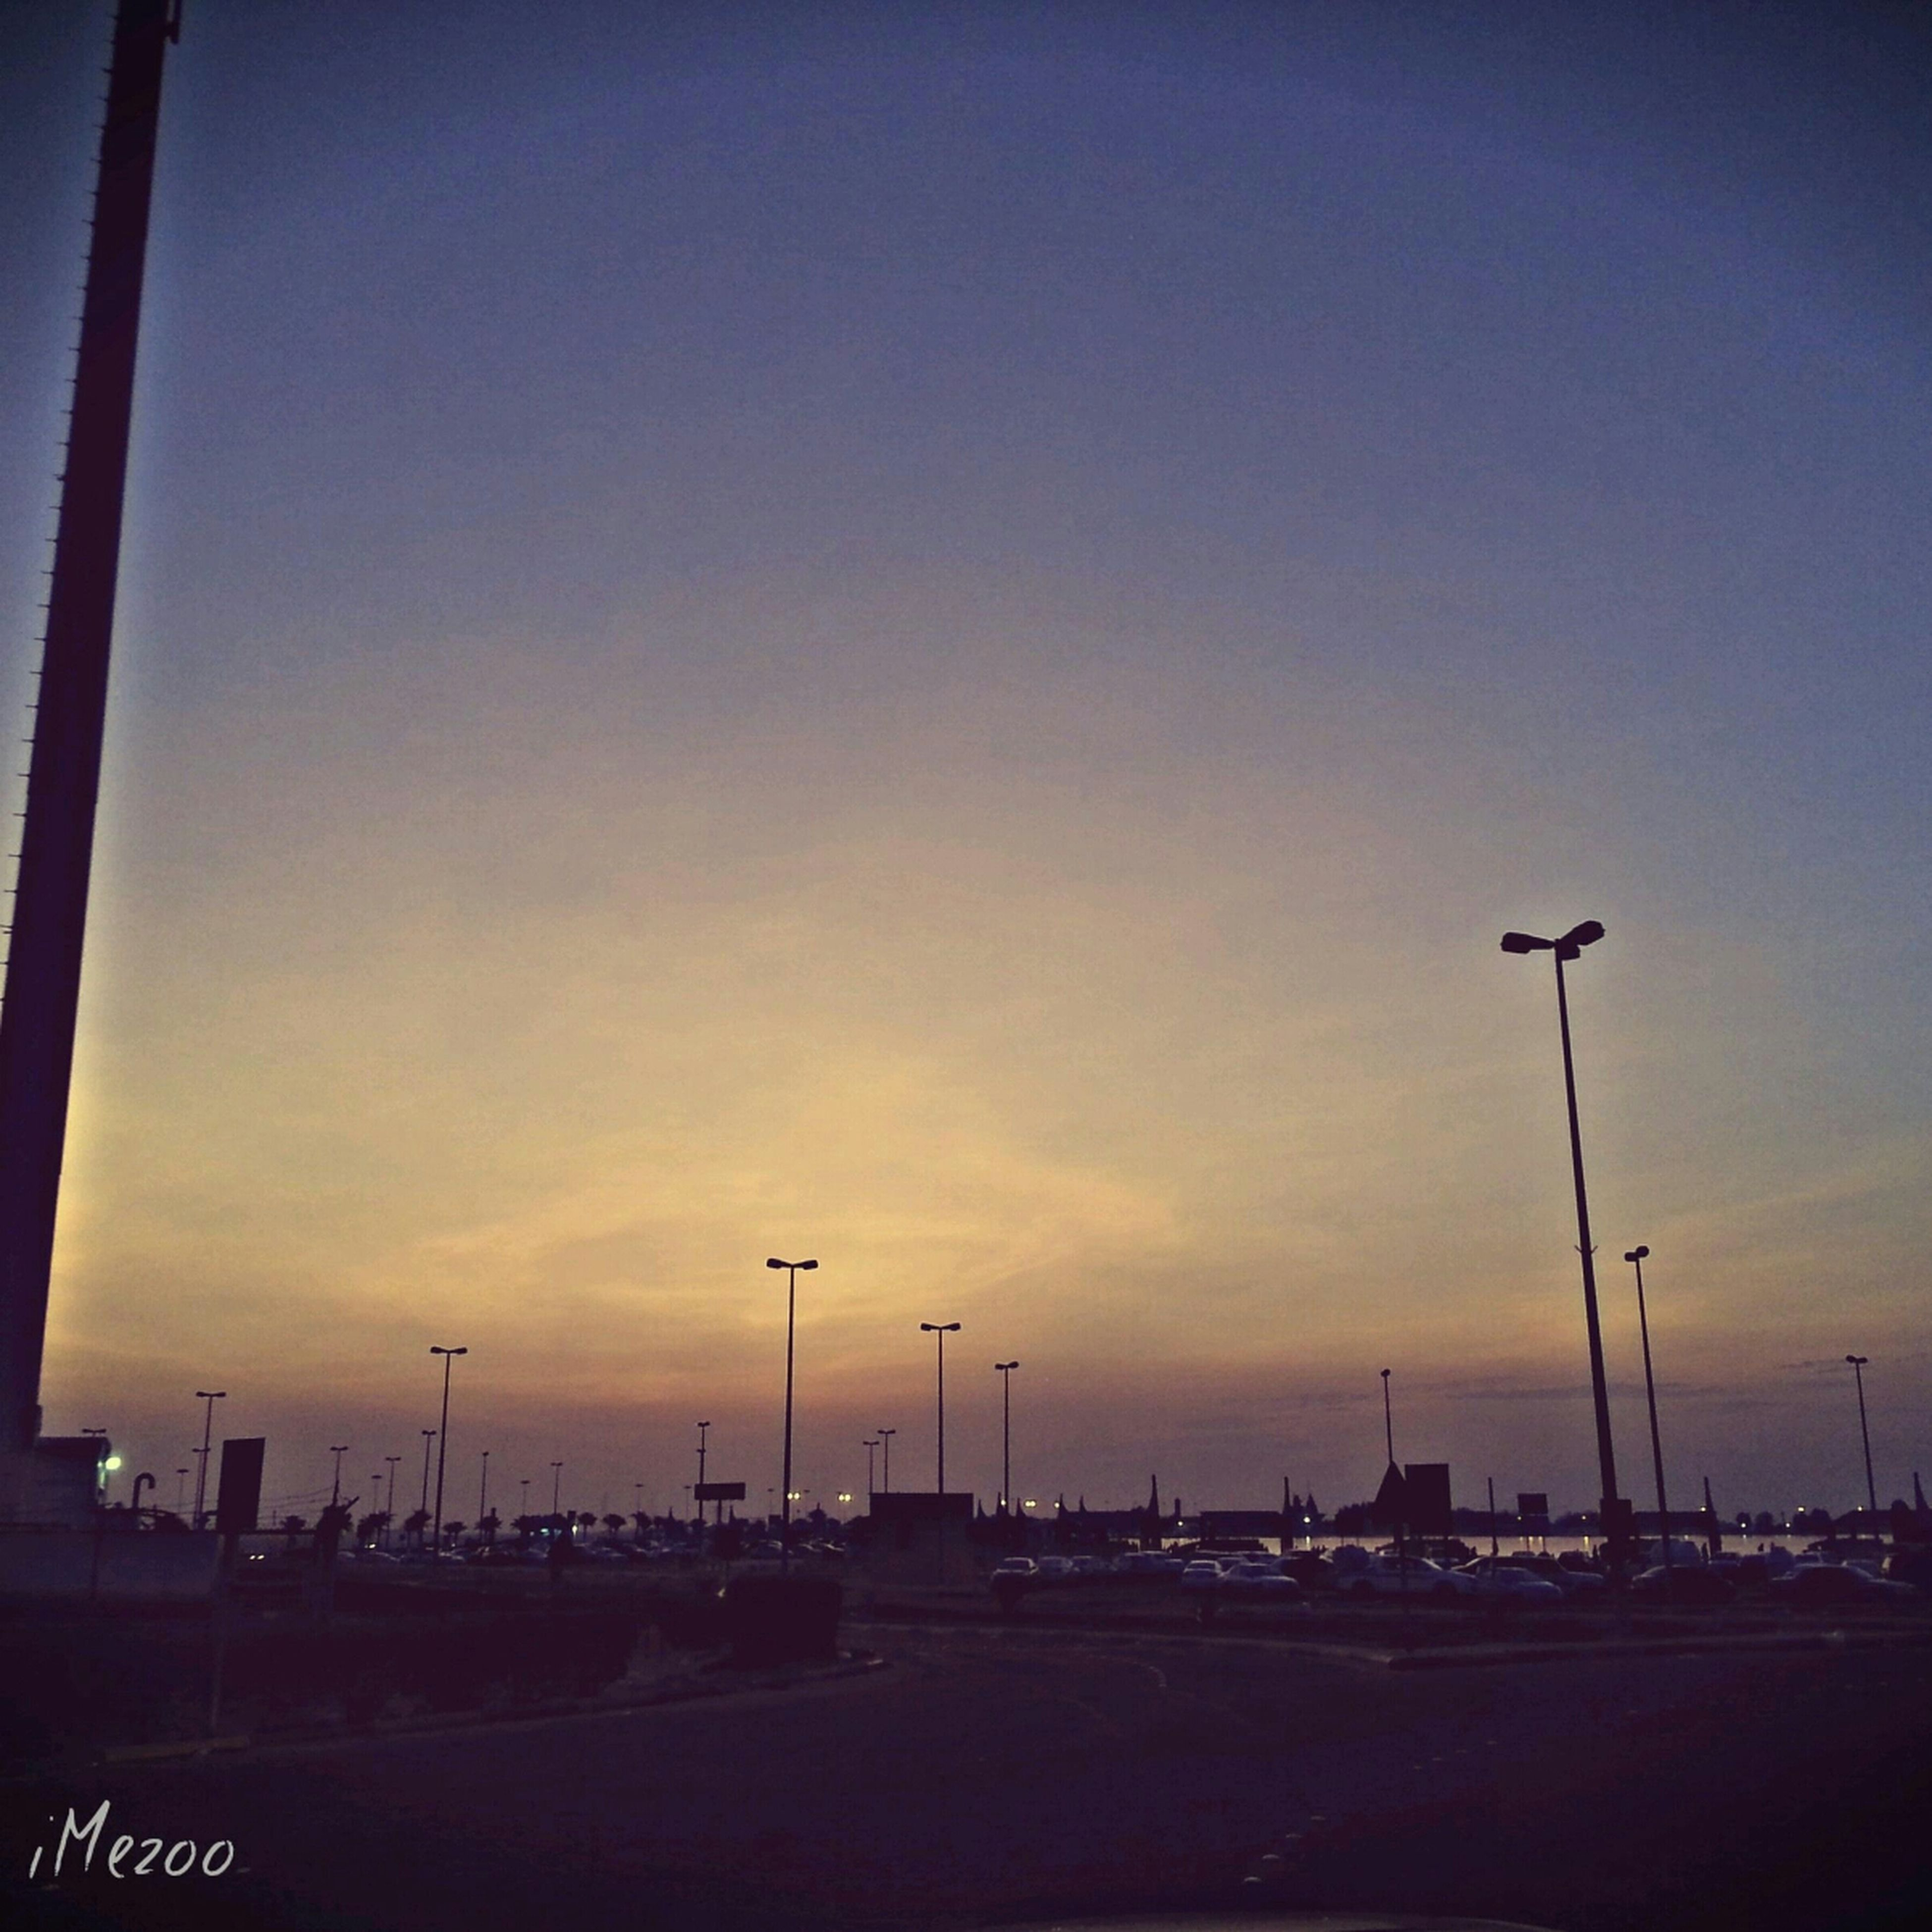 street light, transportation, sunset, sky, road, car, lighting equipment, street, in a row, mode of transport, illuminated, copy space, land vehicle, silhouette, parking lot, built structure, dusk, outdoors, pole, no people